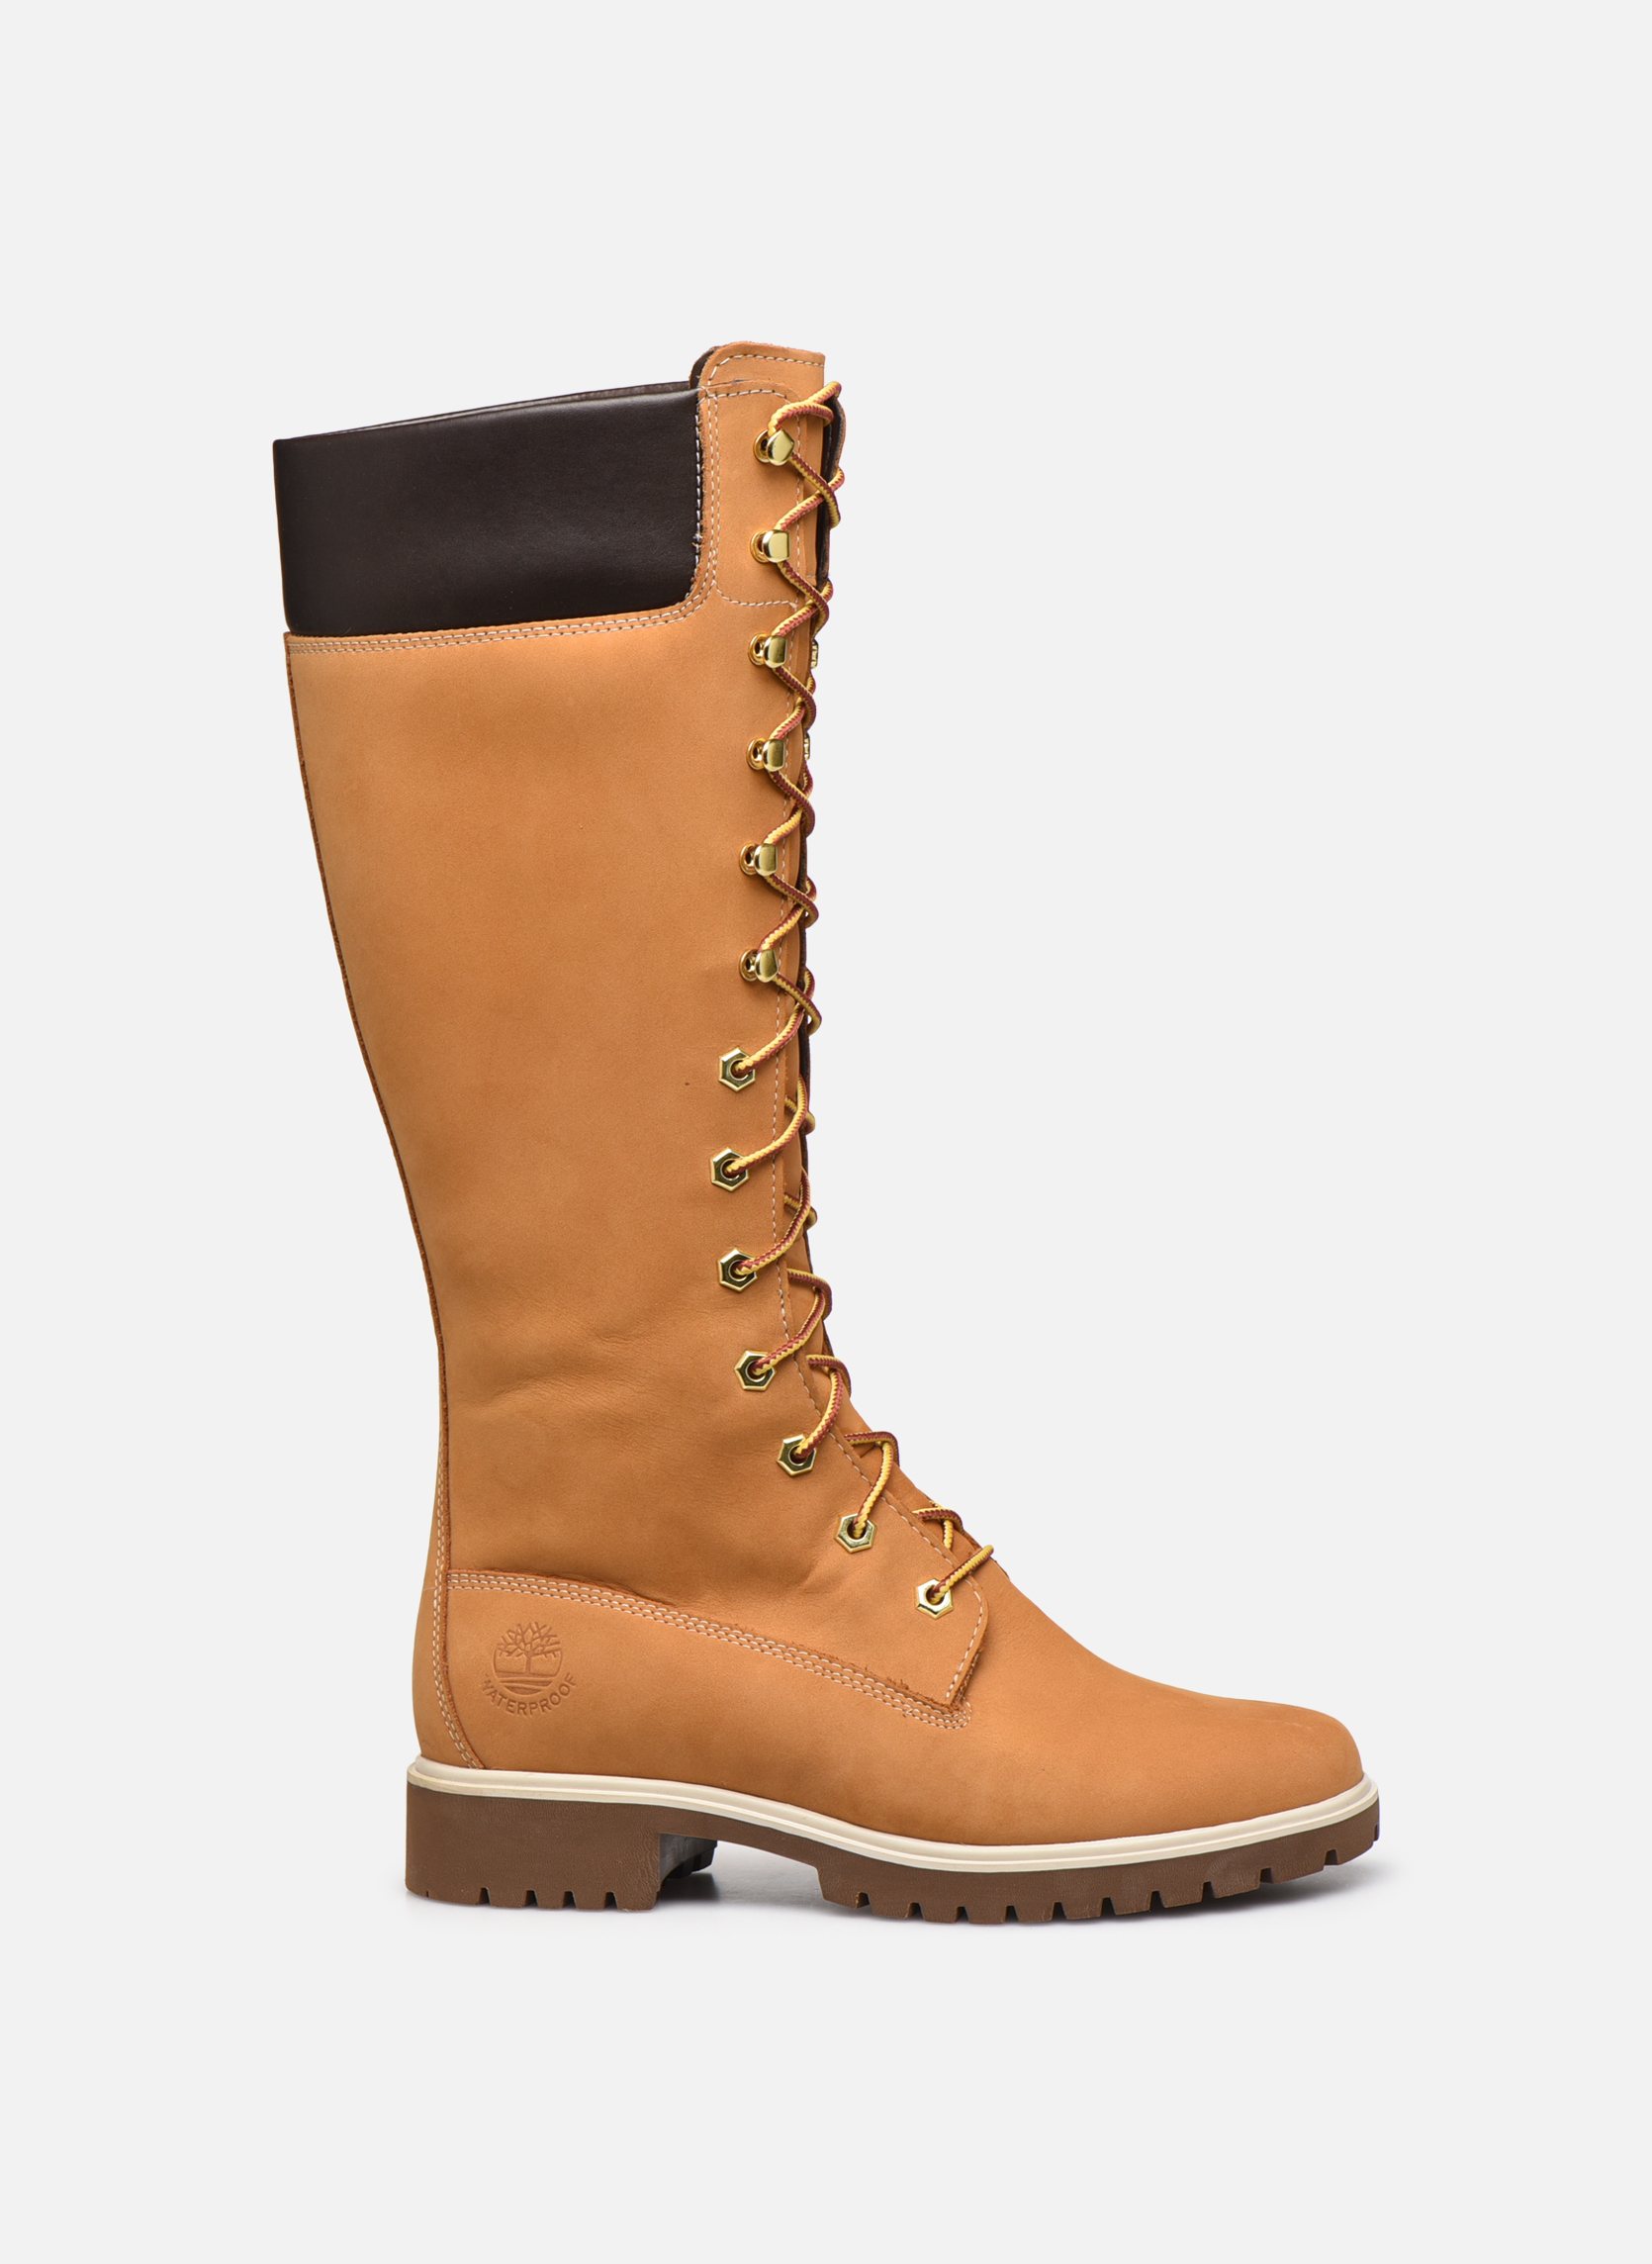 Women's Premium 14 inch Wheat Nubuck